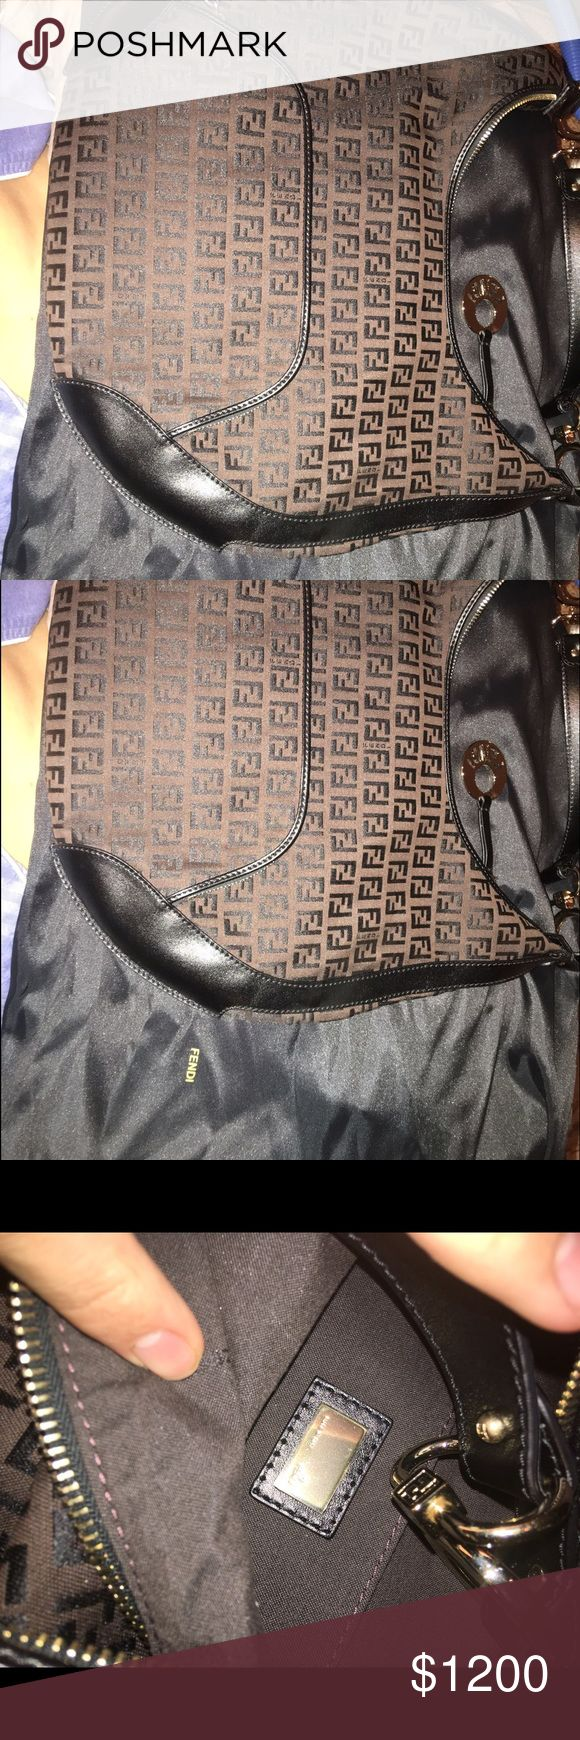 100% Authentic Never Used Fendi Purse Brown and Black Double F Fendi purse with carry bag never used 100% genuine Fendi Bags